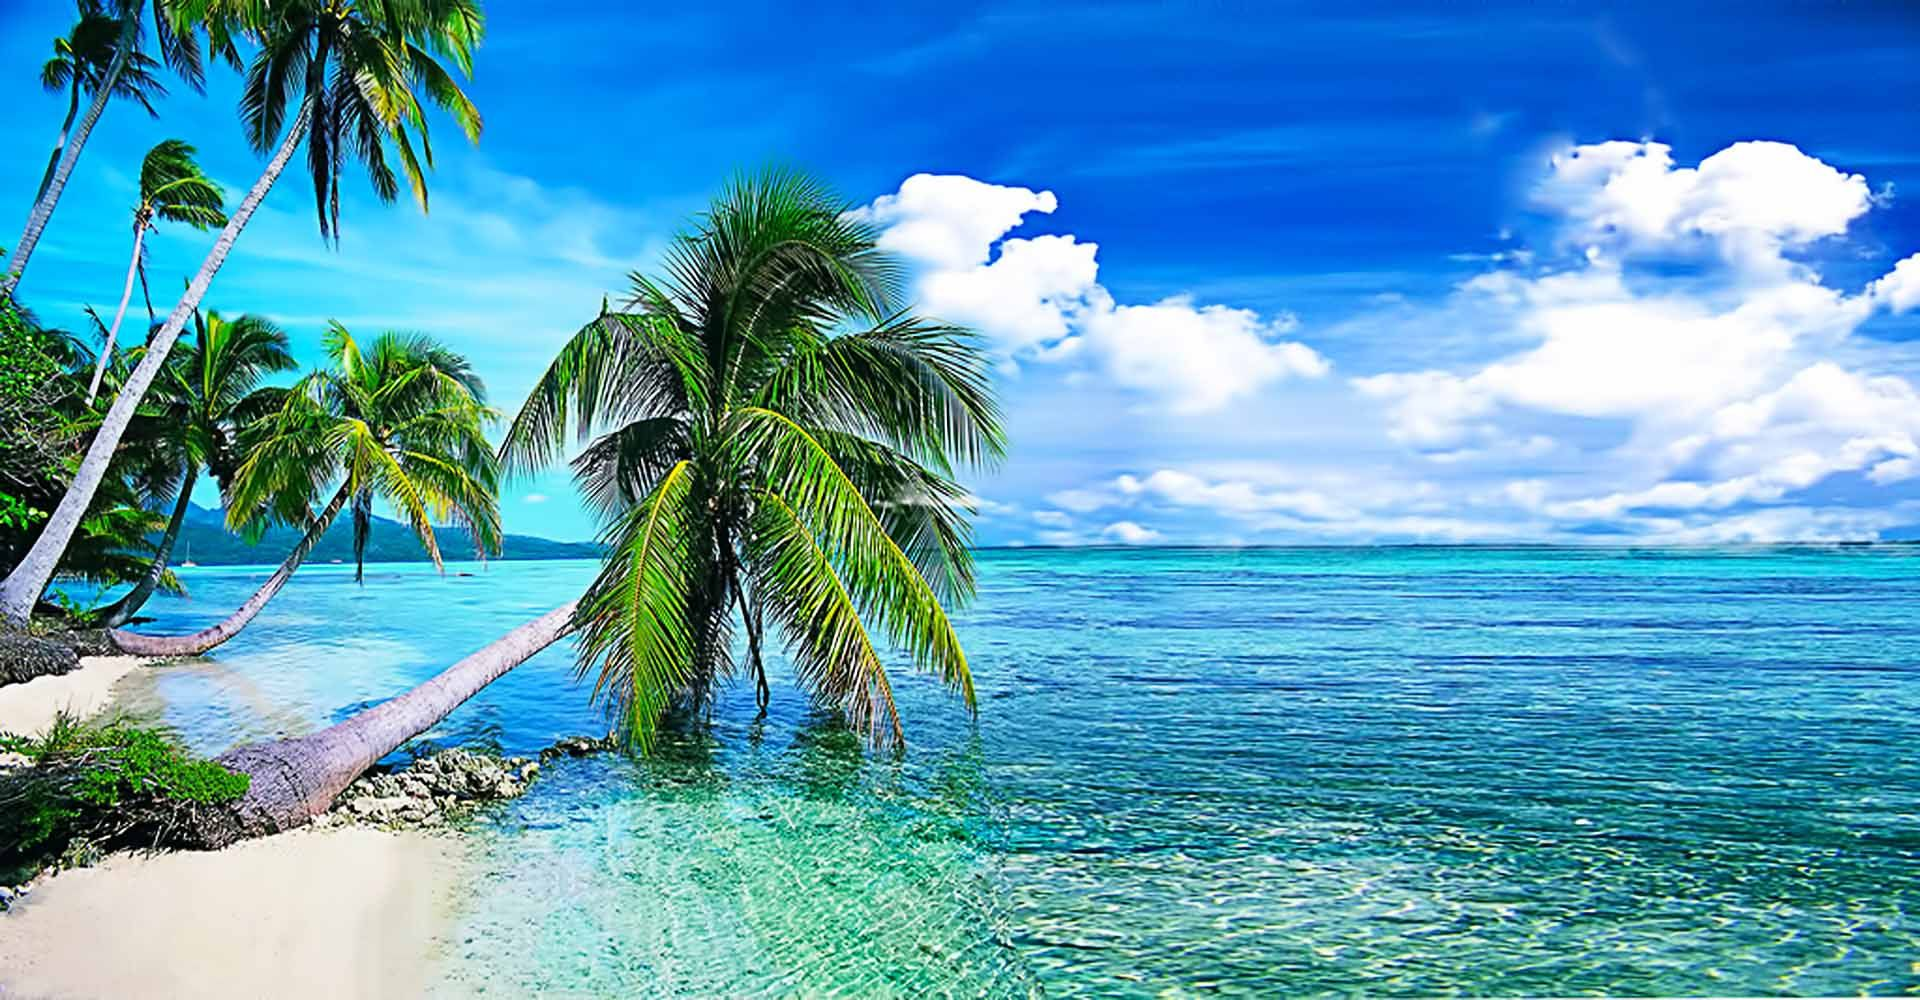 60 Live Backgrounds For Pc Free Download Pixelstalk Net In 2020 Beach Wallpaper Hd Wallpapers For Pc Attractive Wallpapers